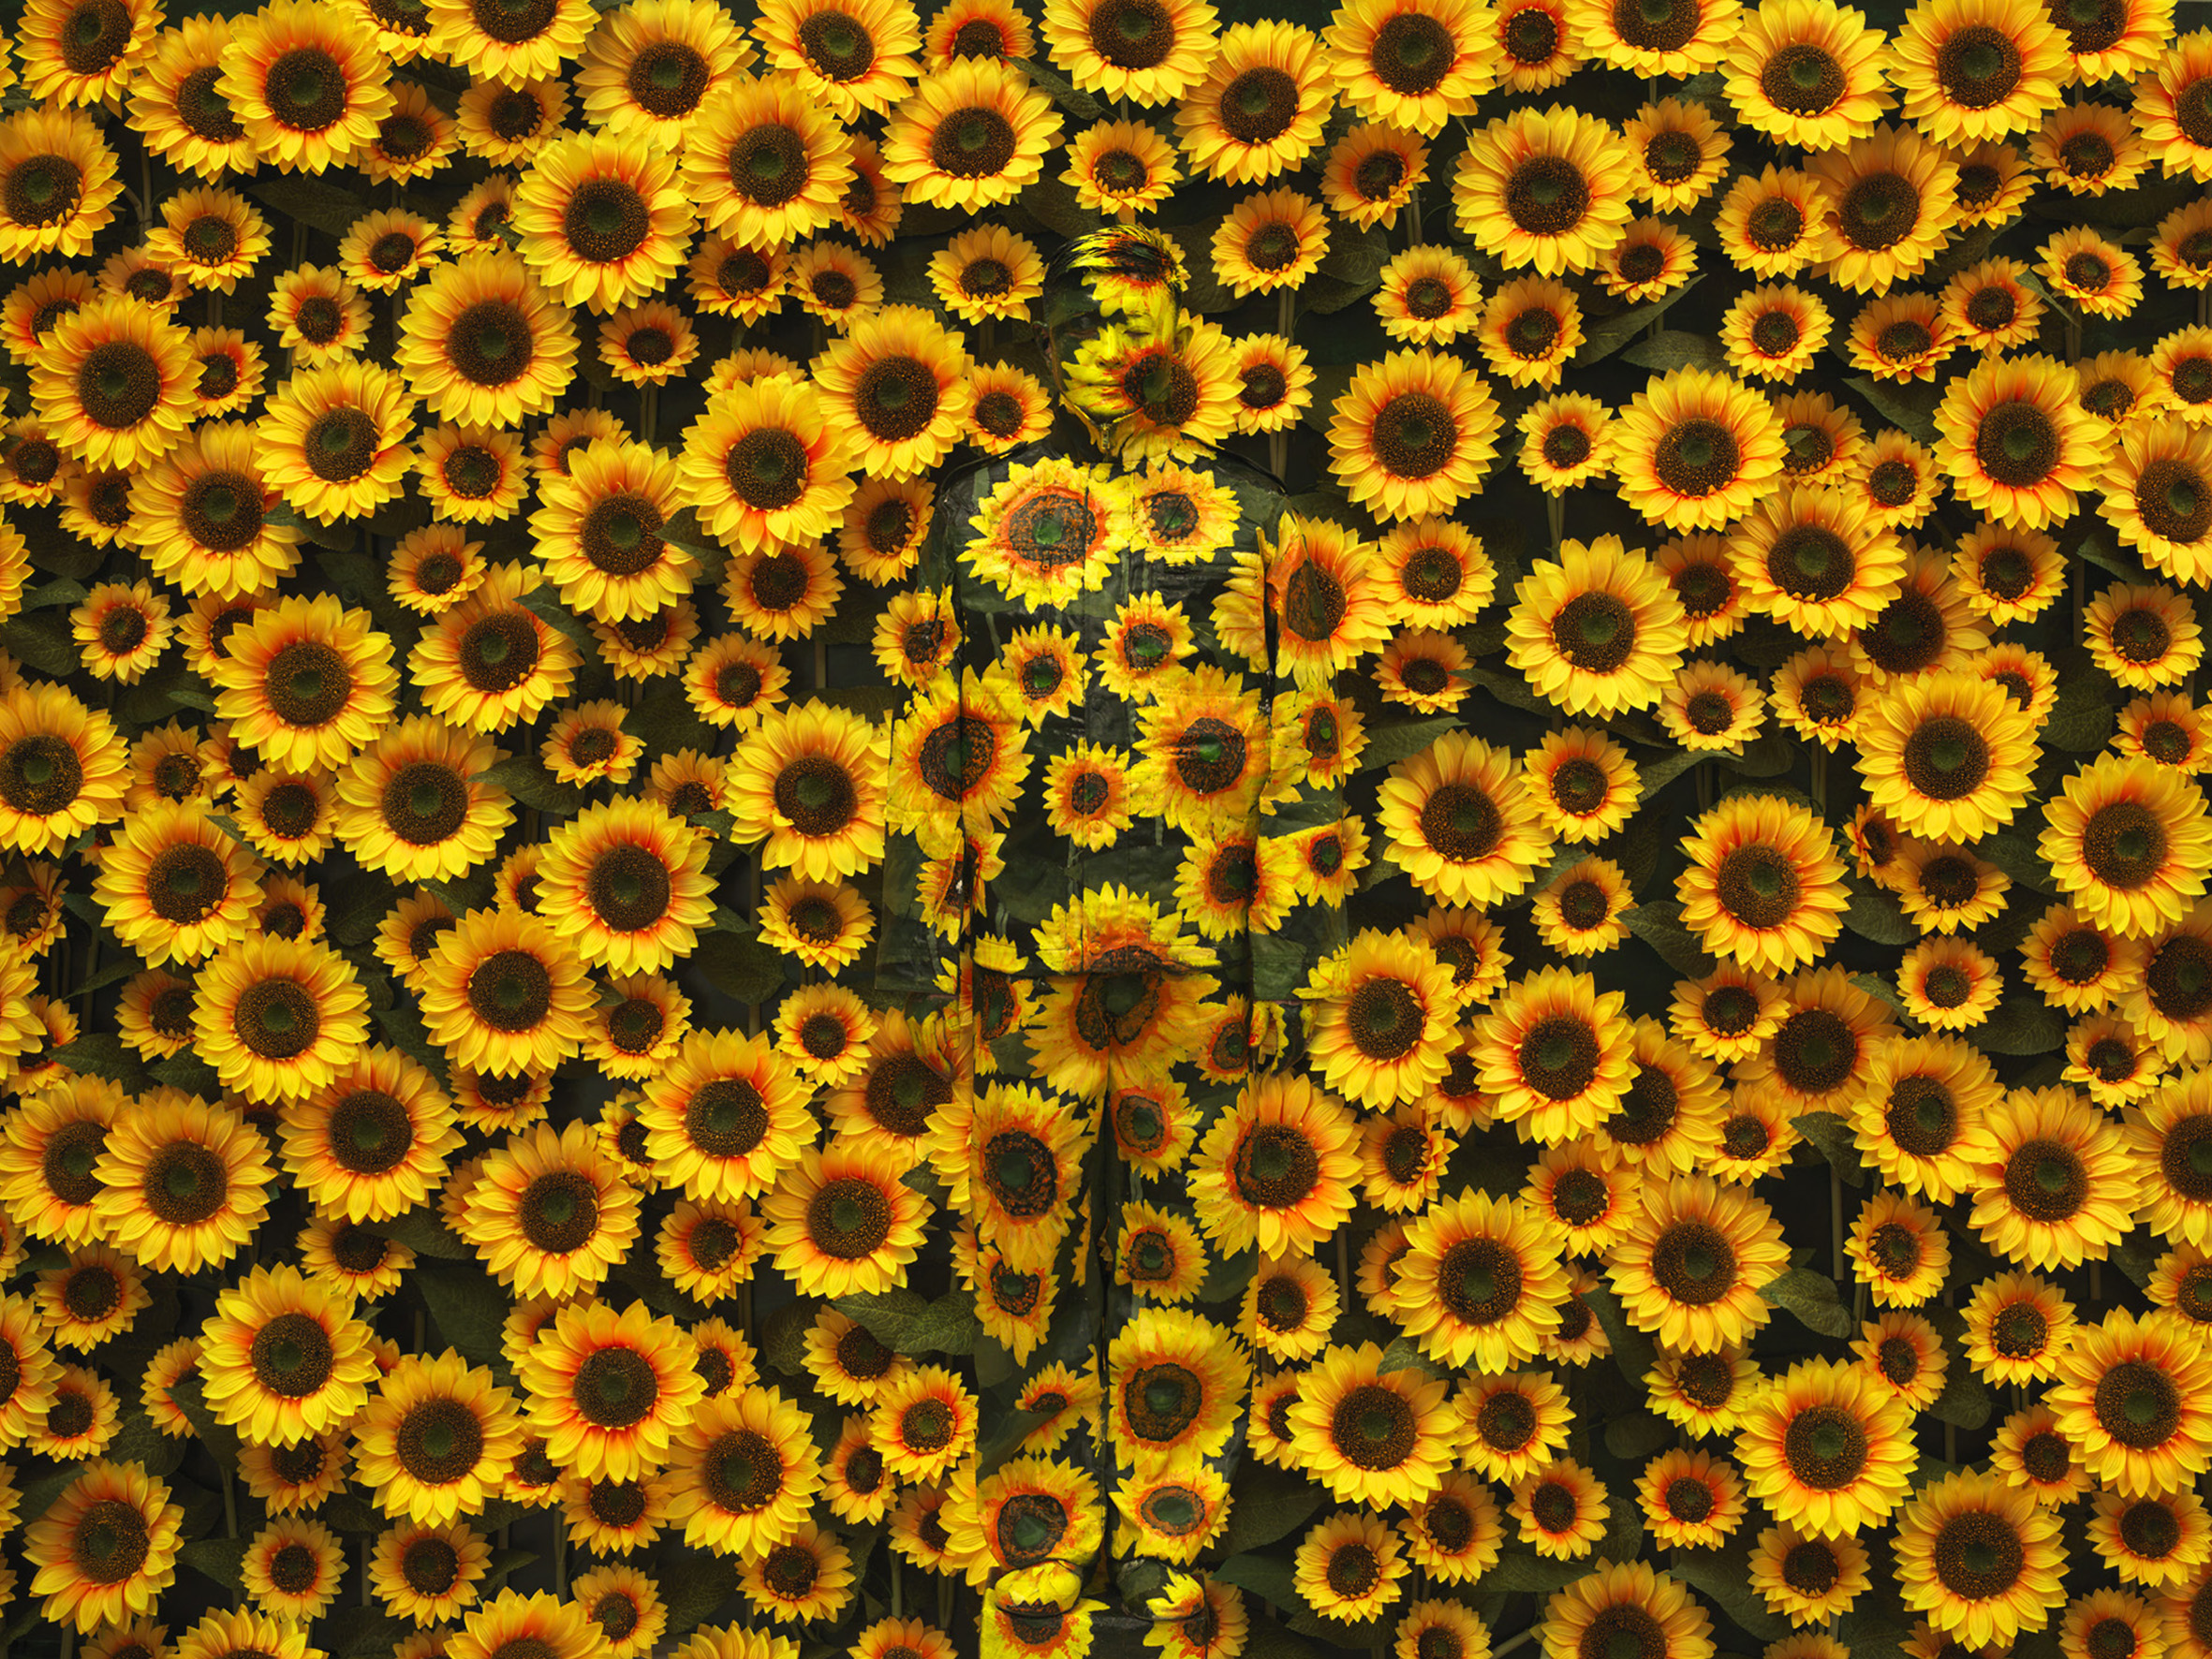 Sunflower I, série Hiding in the city, 2002,© Liu Bolin, courtesy of the artist / Galerie Paris-Beijing